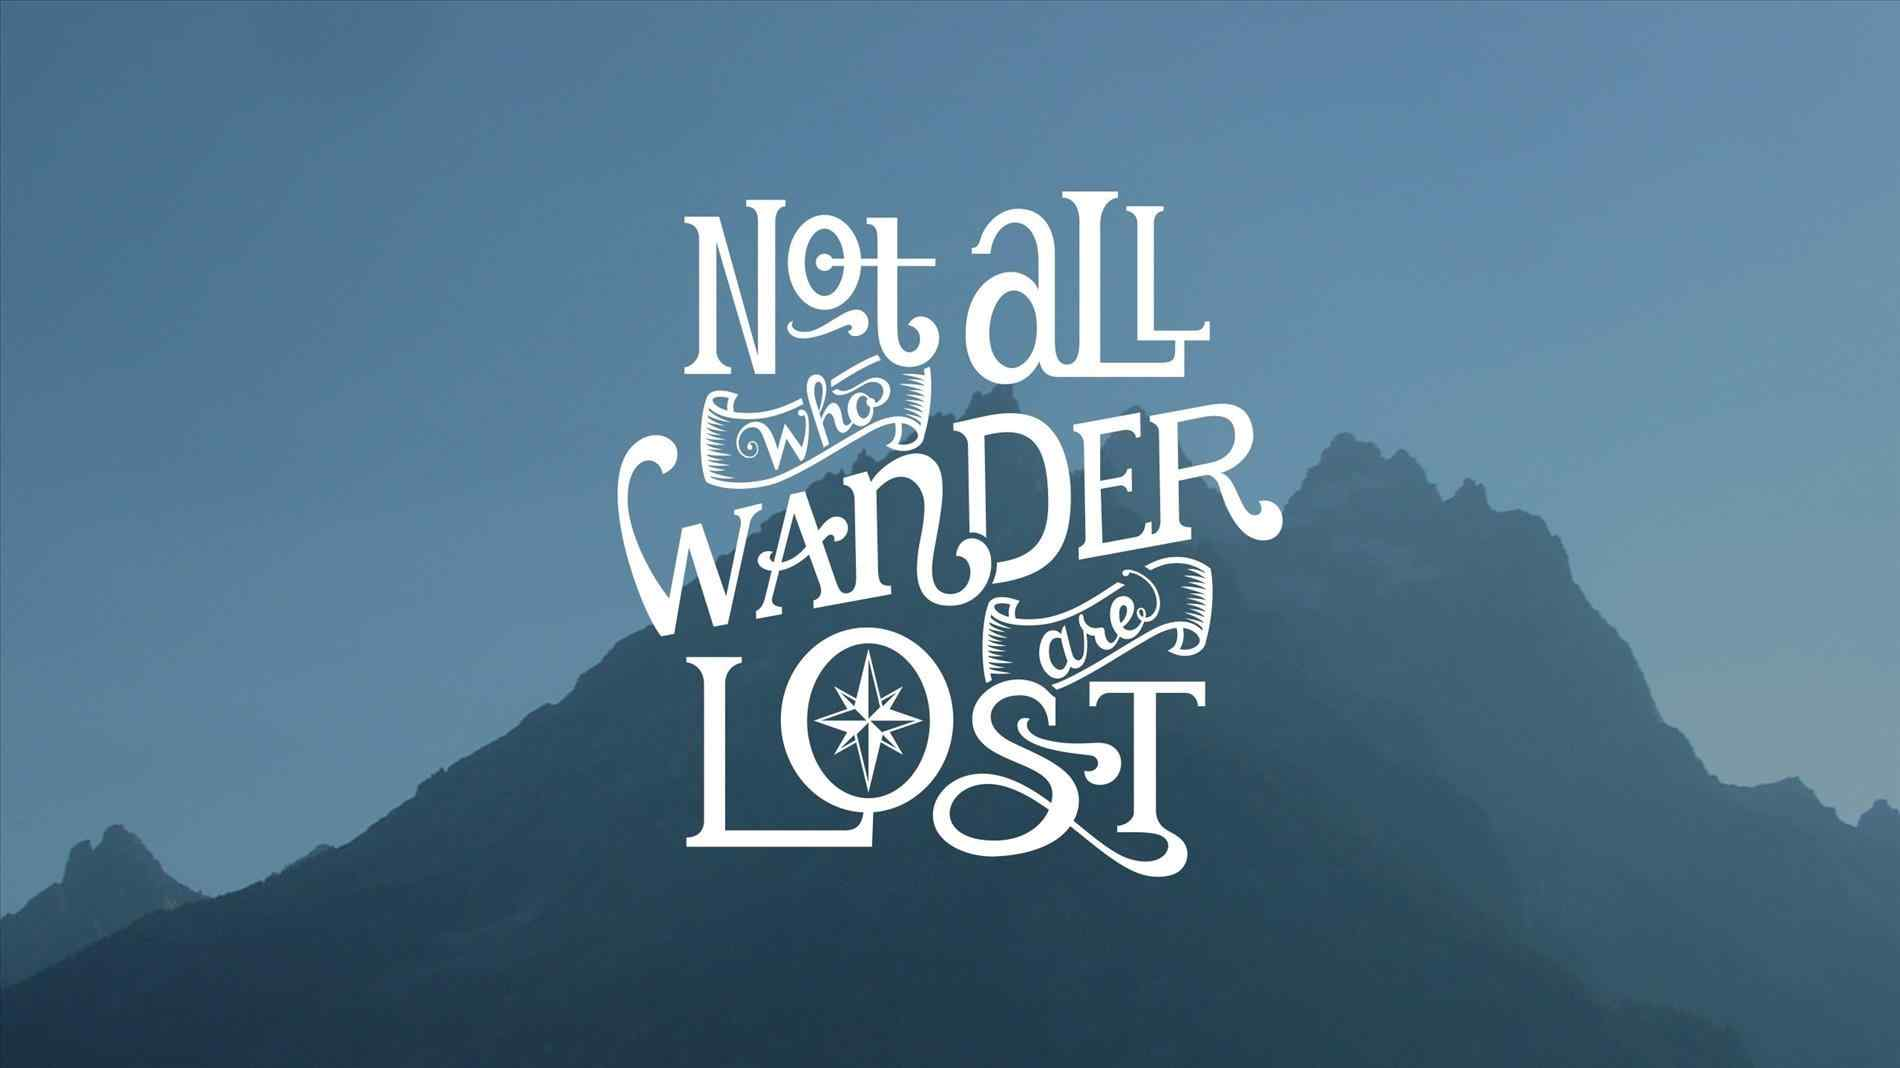 Wallpaper Tumblr Typography Tumblr Desktop Wallpapers Lord Of The Rings Wallpaper Quotes 57175 Hd Wallpaper Backgrounds Download Your favourite piece from our refreshed classic collection? lord of the rings wallpaper quotes